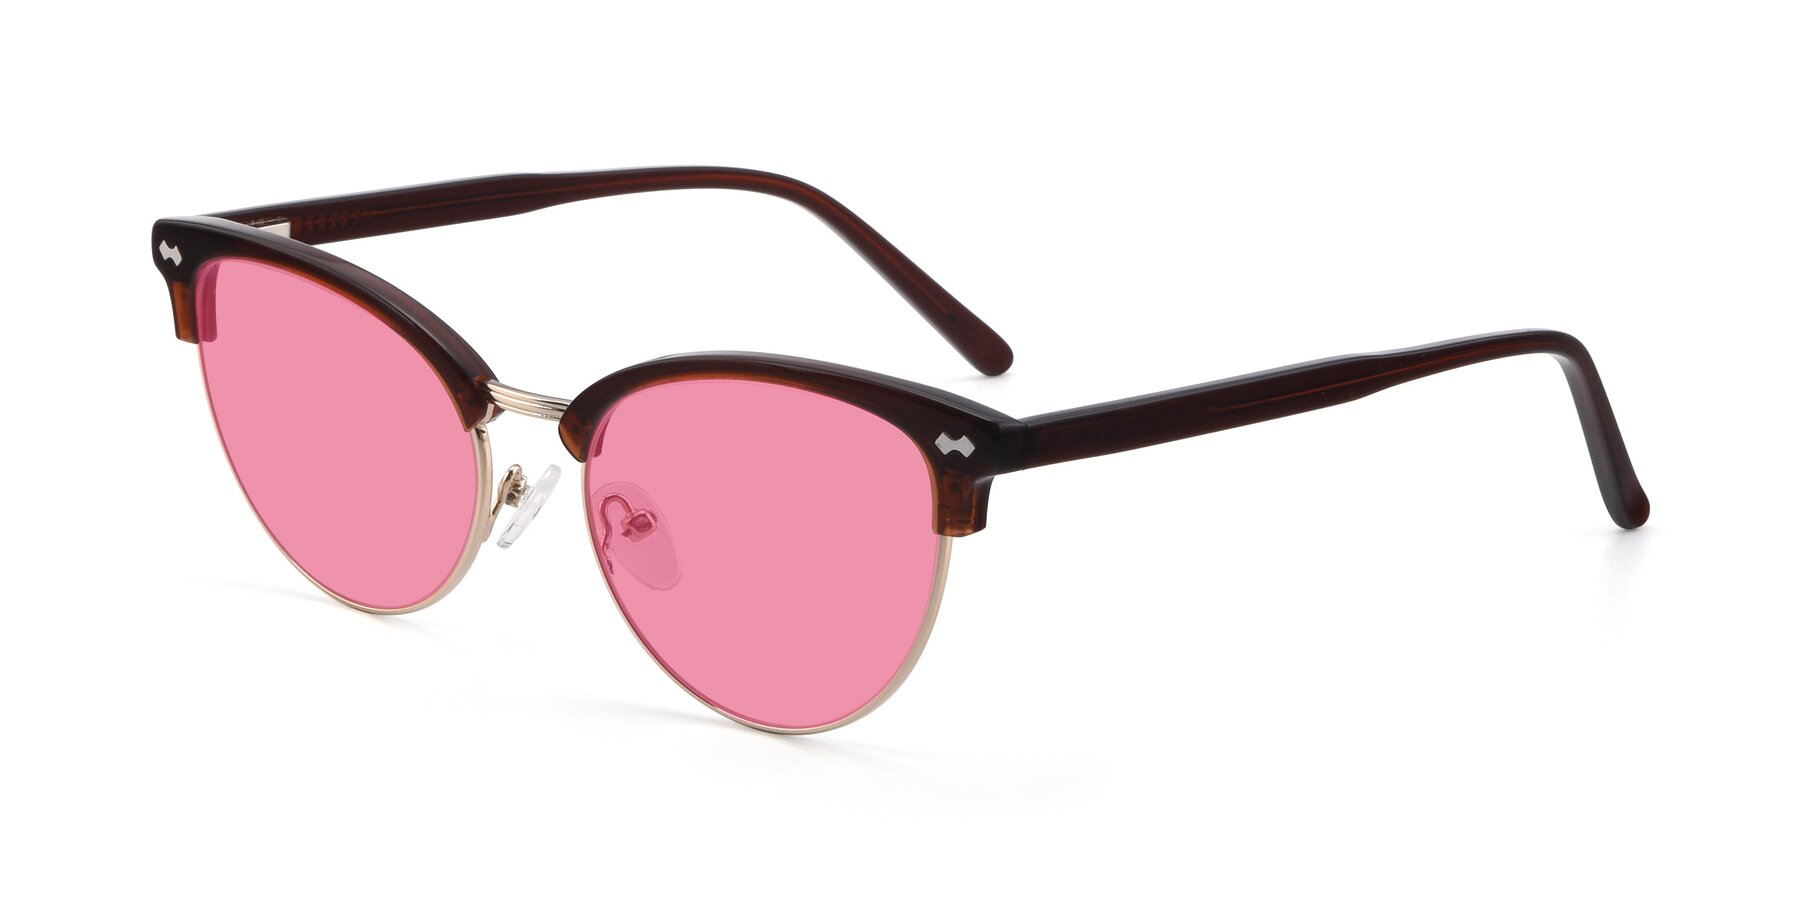 Angle of 17461 in Tortoise-Black with Pink Tinted Lenses